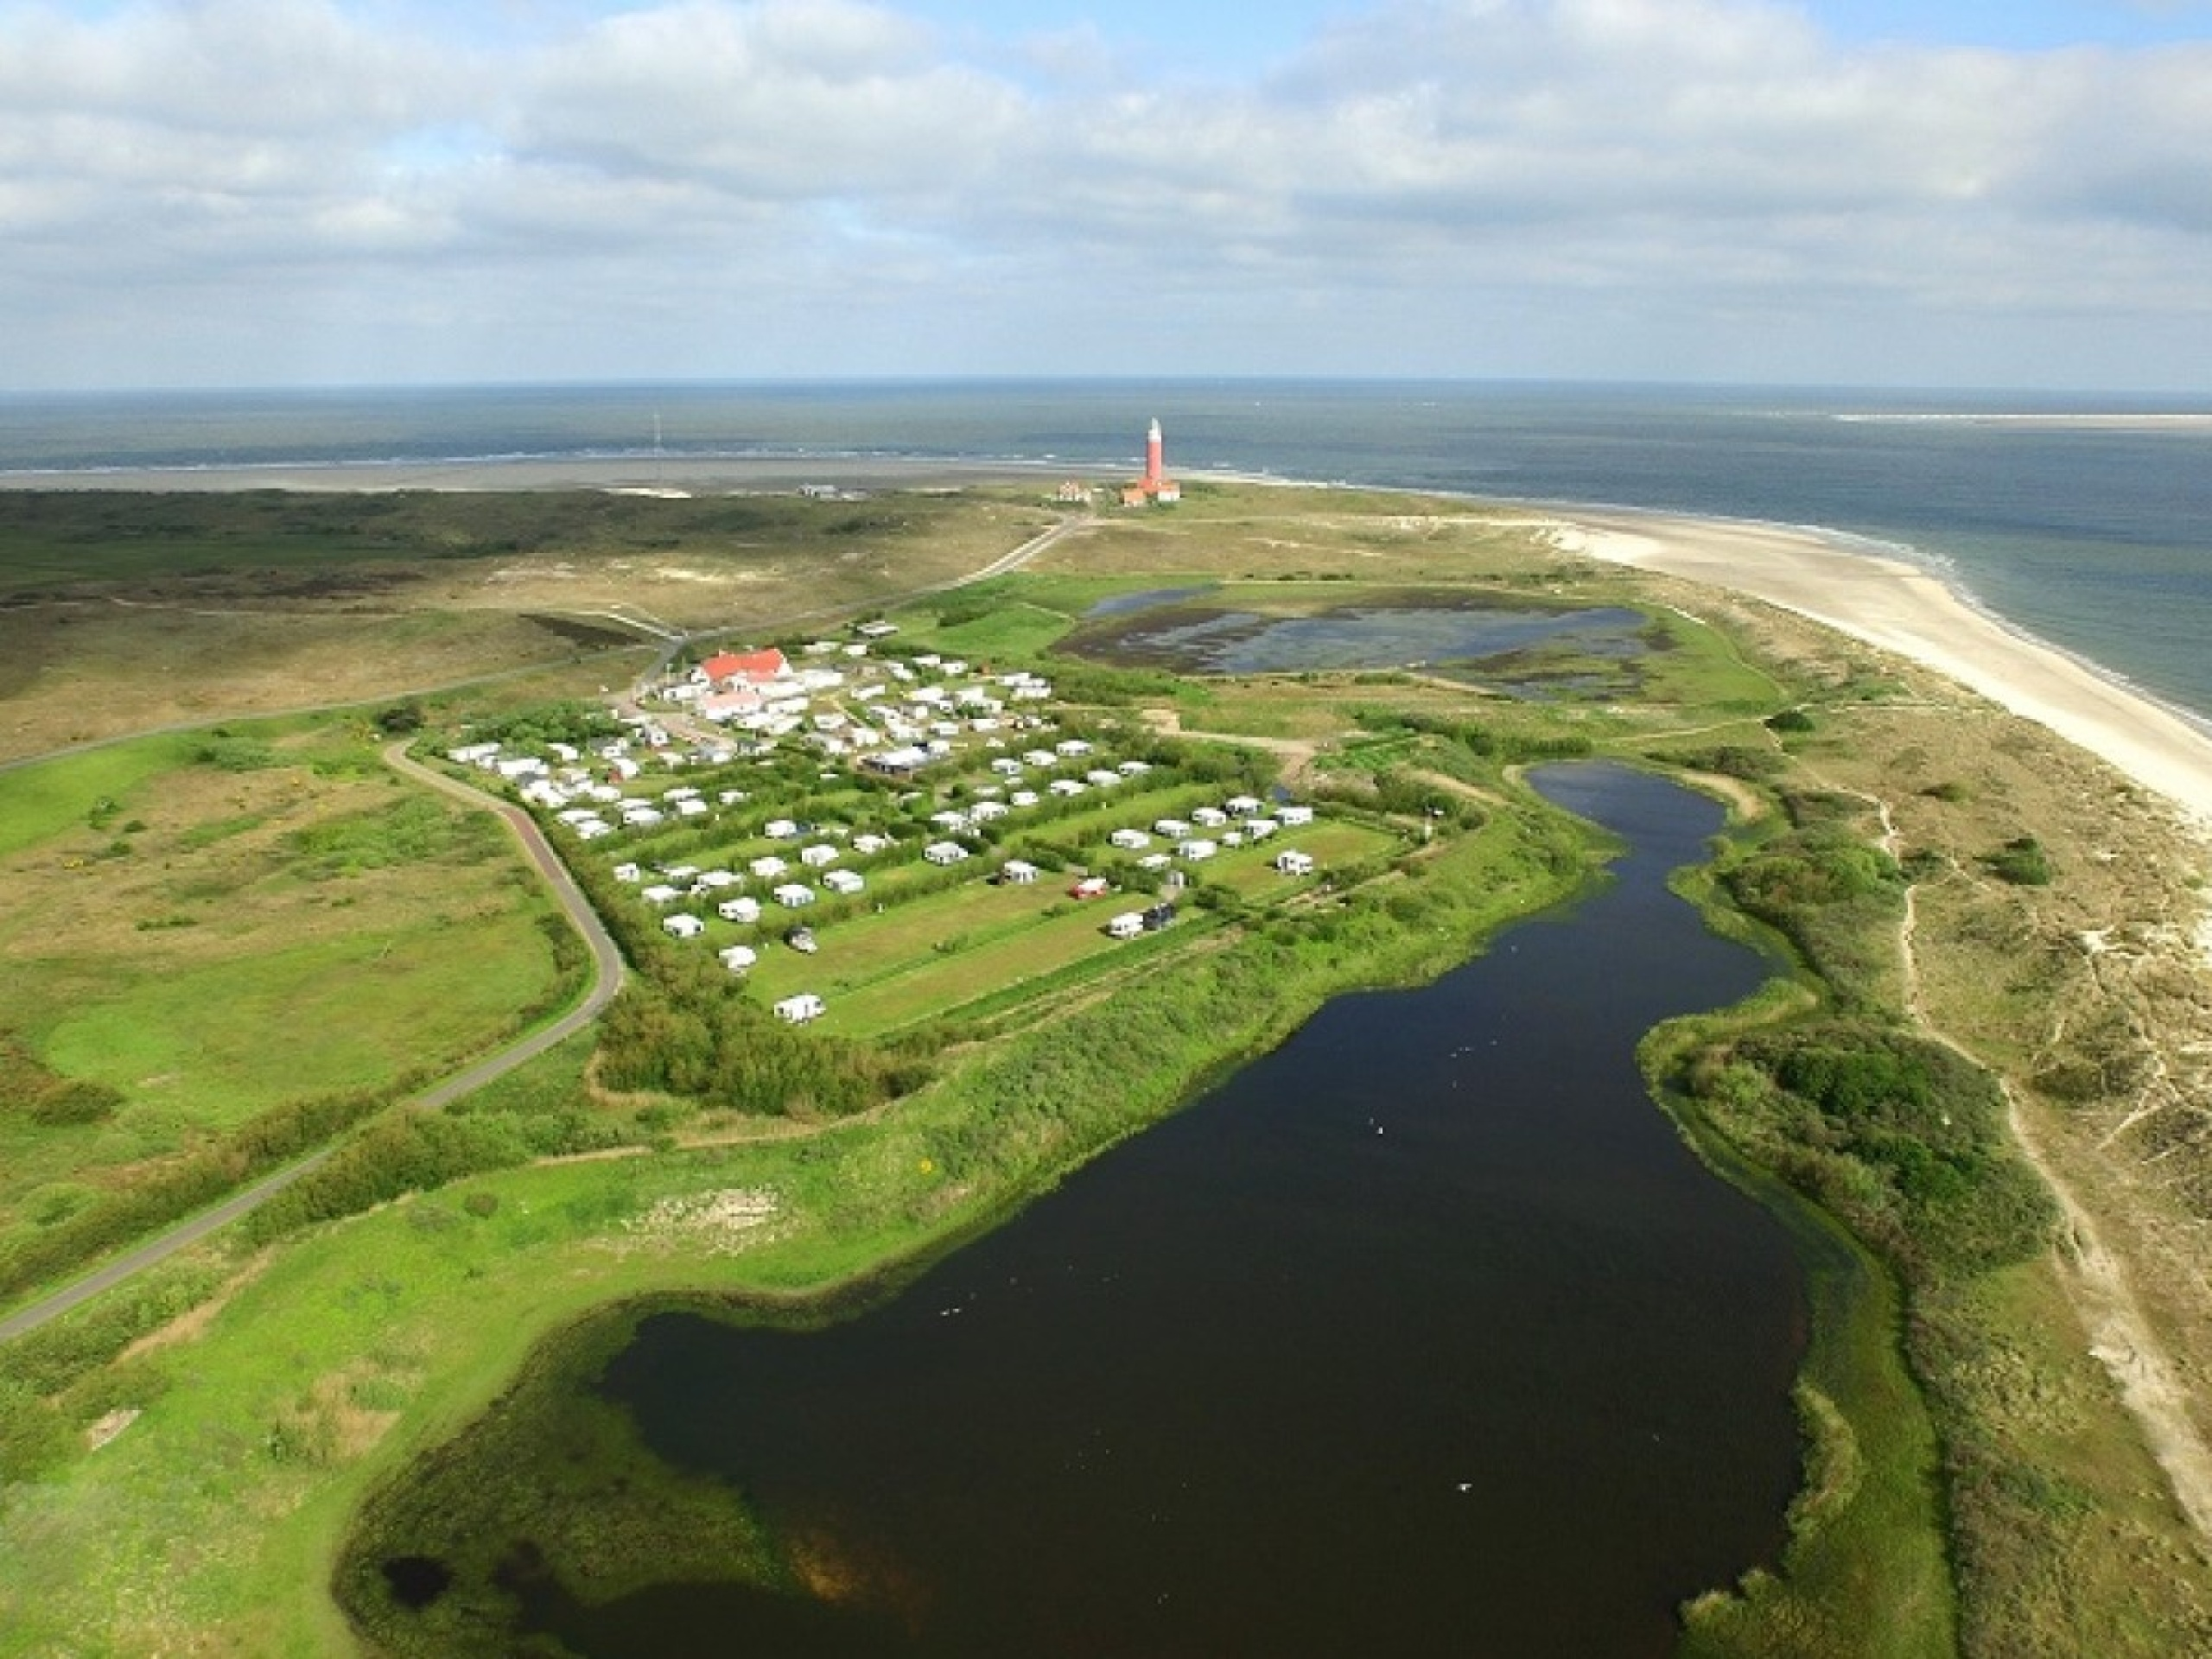 Delicious camping in the dunes near the lighthouse and De Cocksdorp